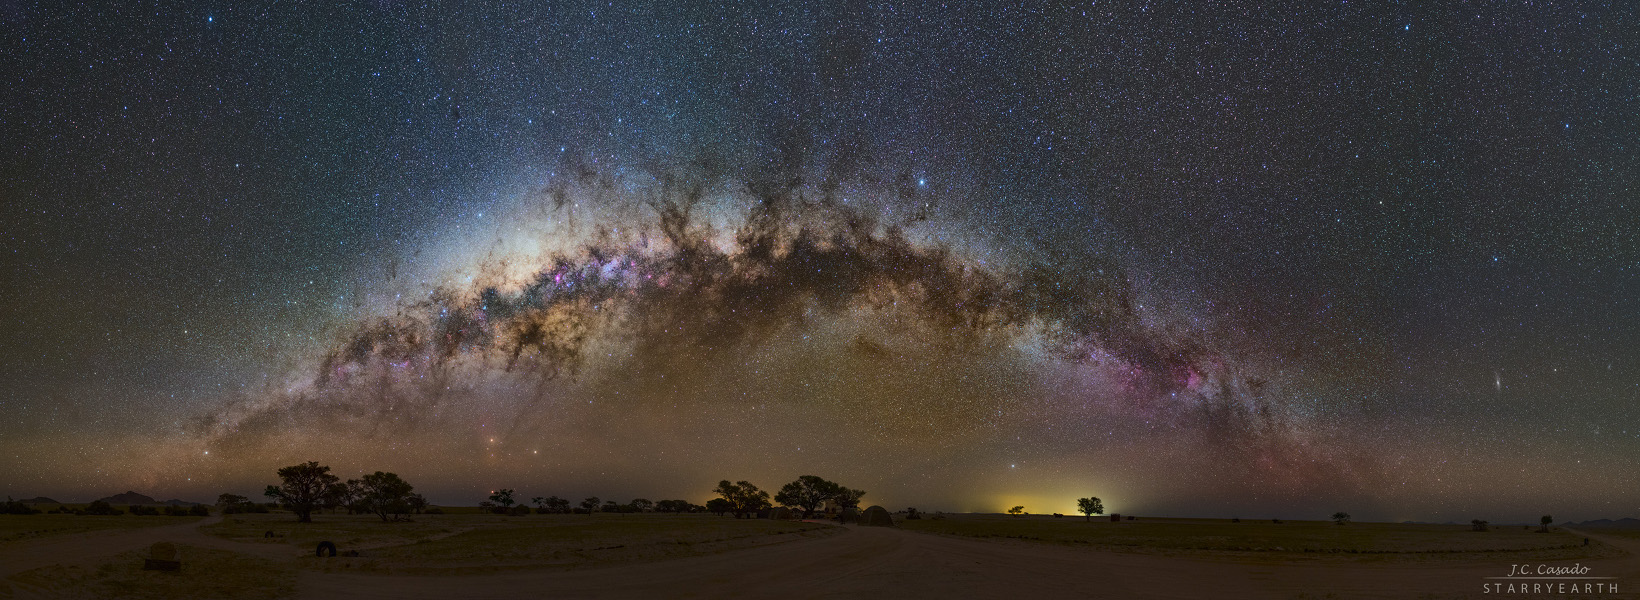 The Milky Way Sets -  The Milky Way Sets